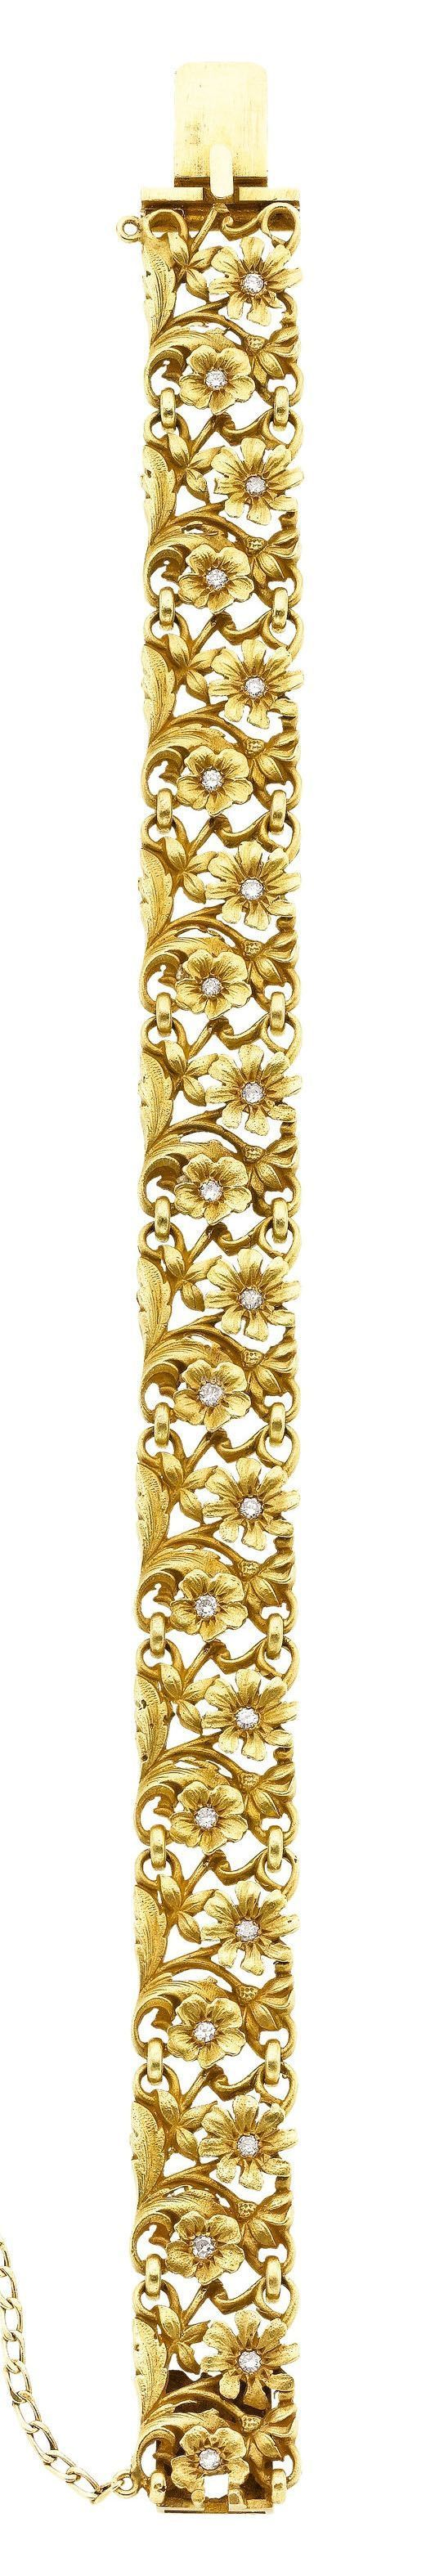 Art Nouveau Diamond, Gold Bracelet The bracelet features full-cut diamonds weighing a total of approximately 0.40 carat, set in 18k gold, French hallmarks. #goldbracelets #GoldJewelleryRoyal